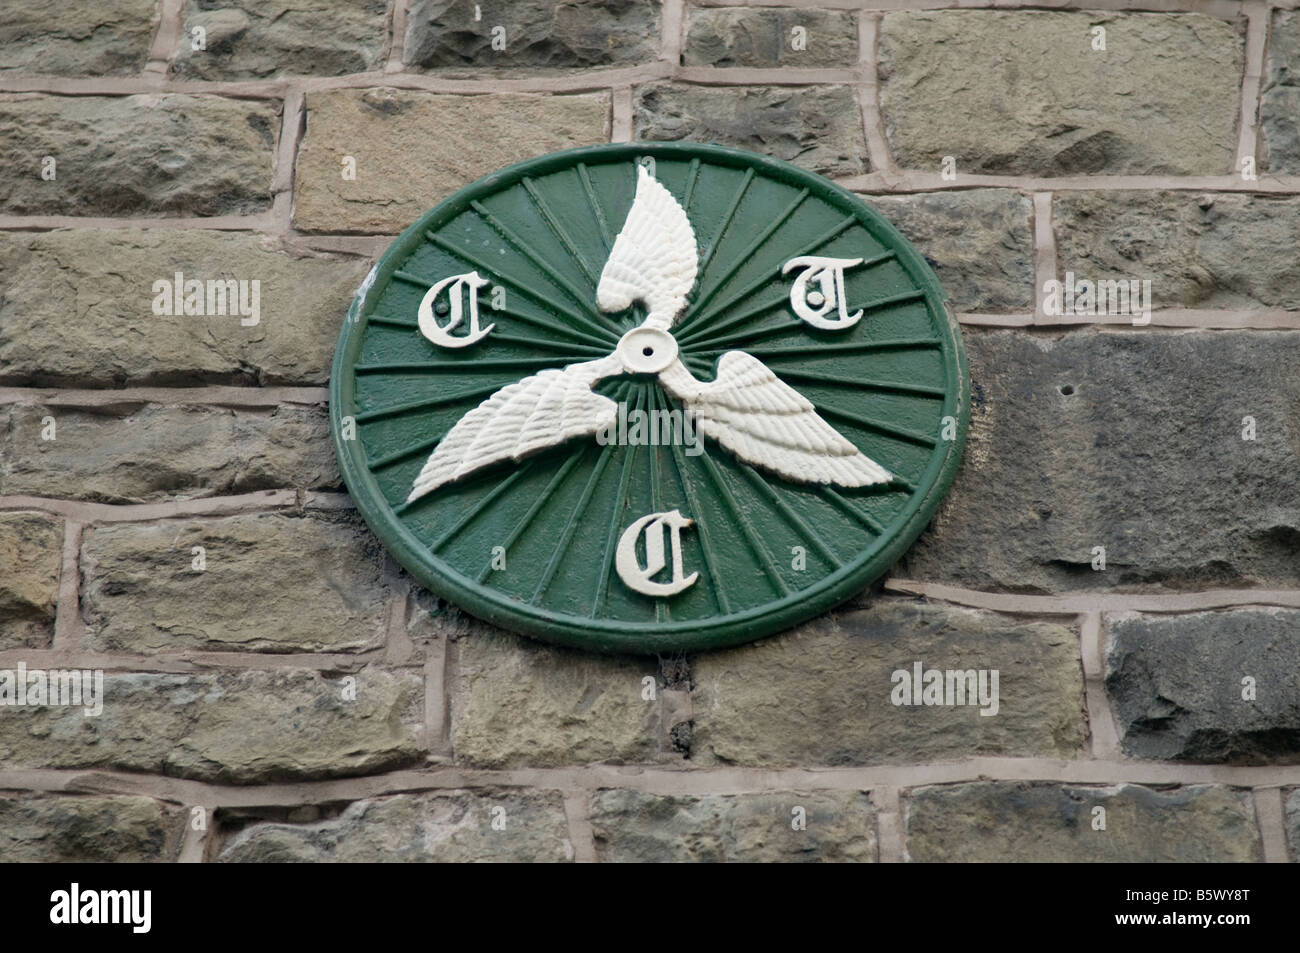 CTC Cyclists Touring Club wheeled wings green painted cast iron sign on building in Builth Wells Powys Wales UK - Stock Image